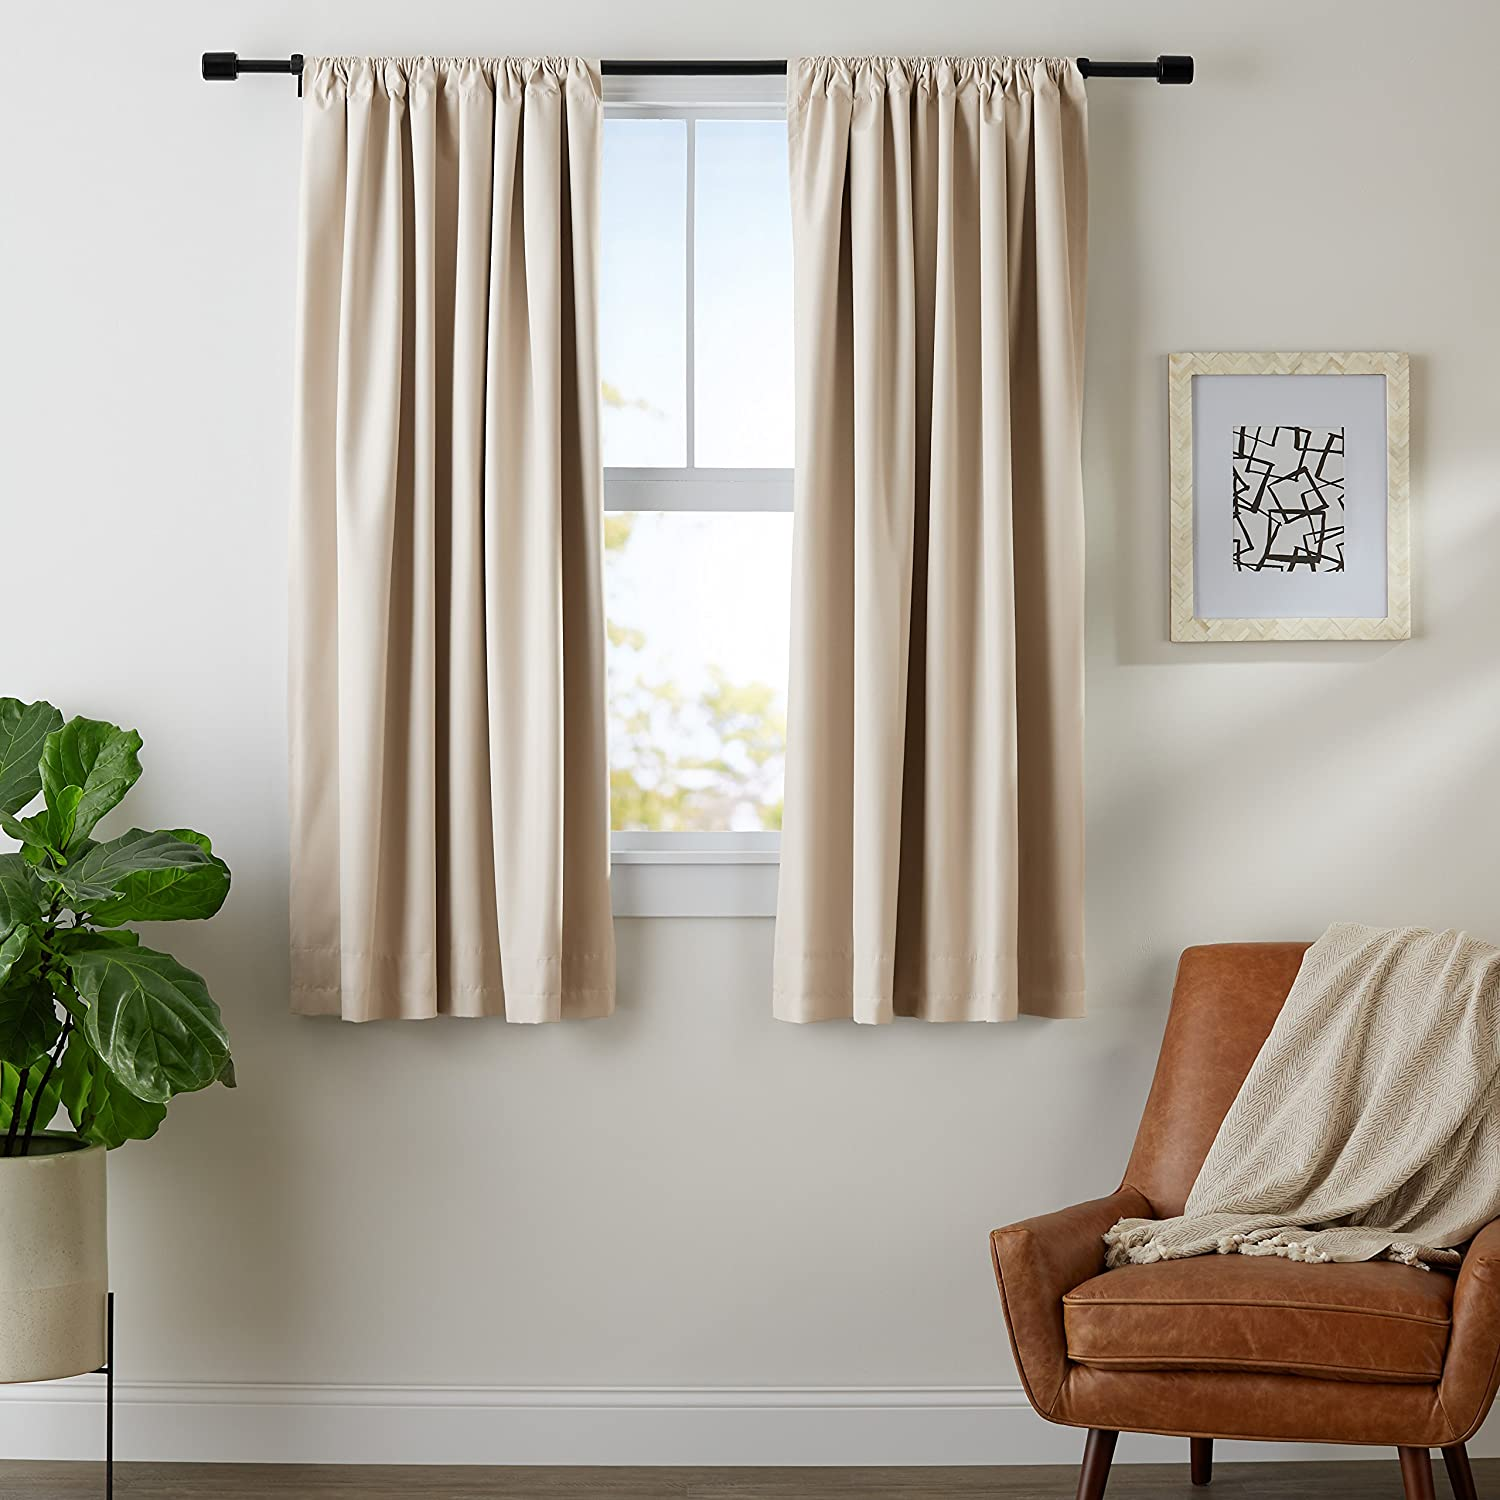 "AmazonBasics Blackout Curtain Set - 52"" x 63"", Grey-Beige, 4-Pack"